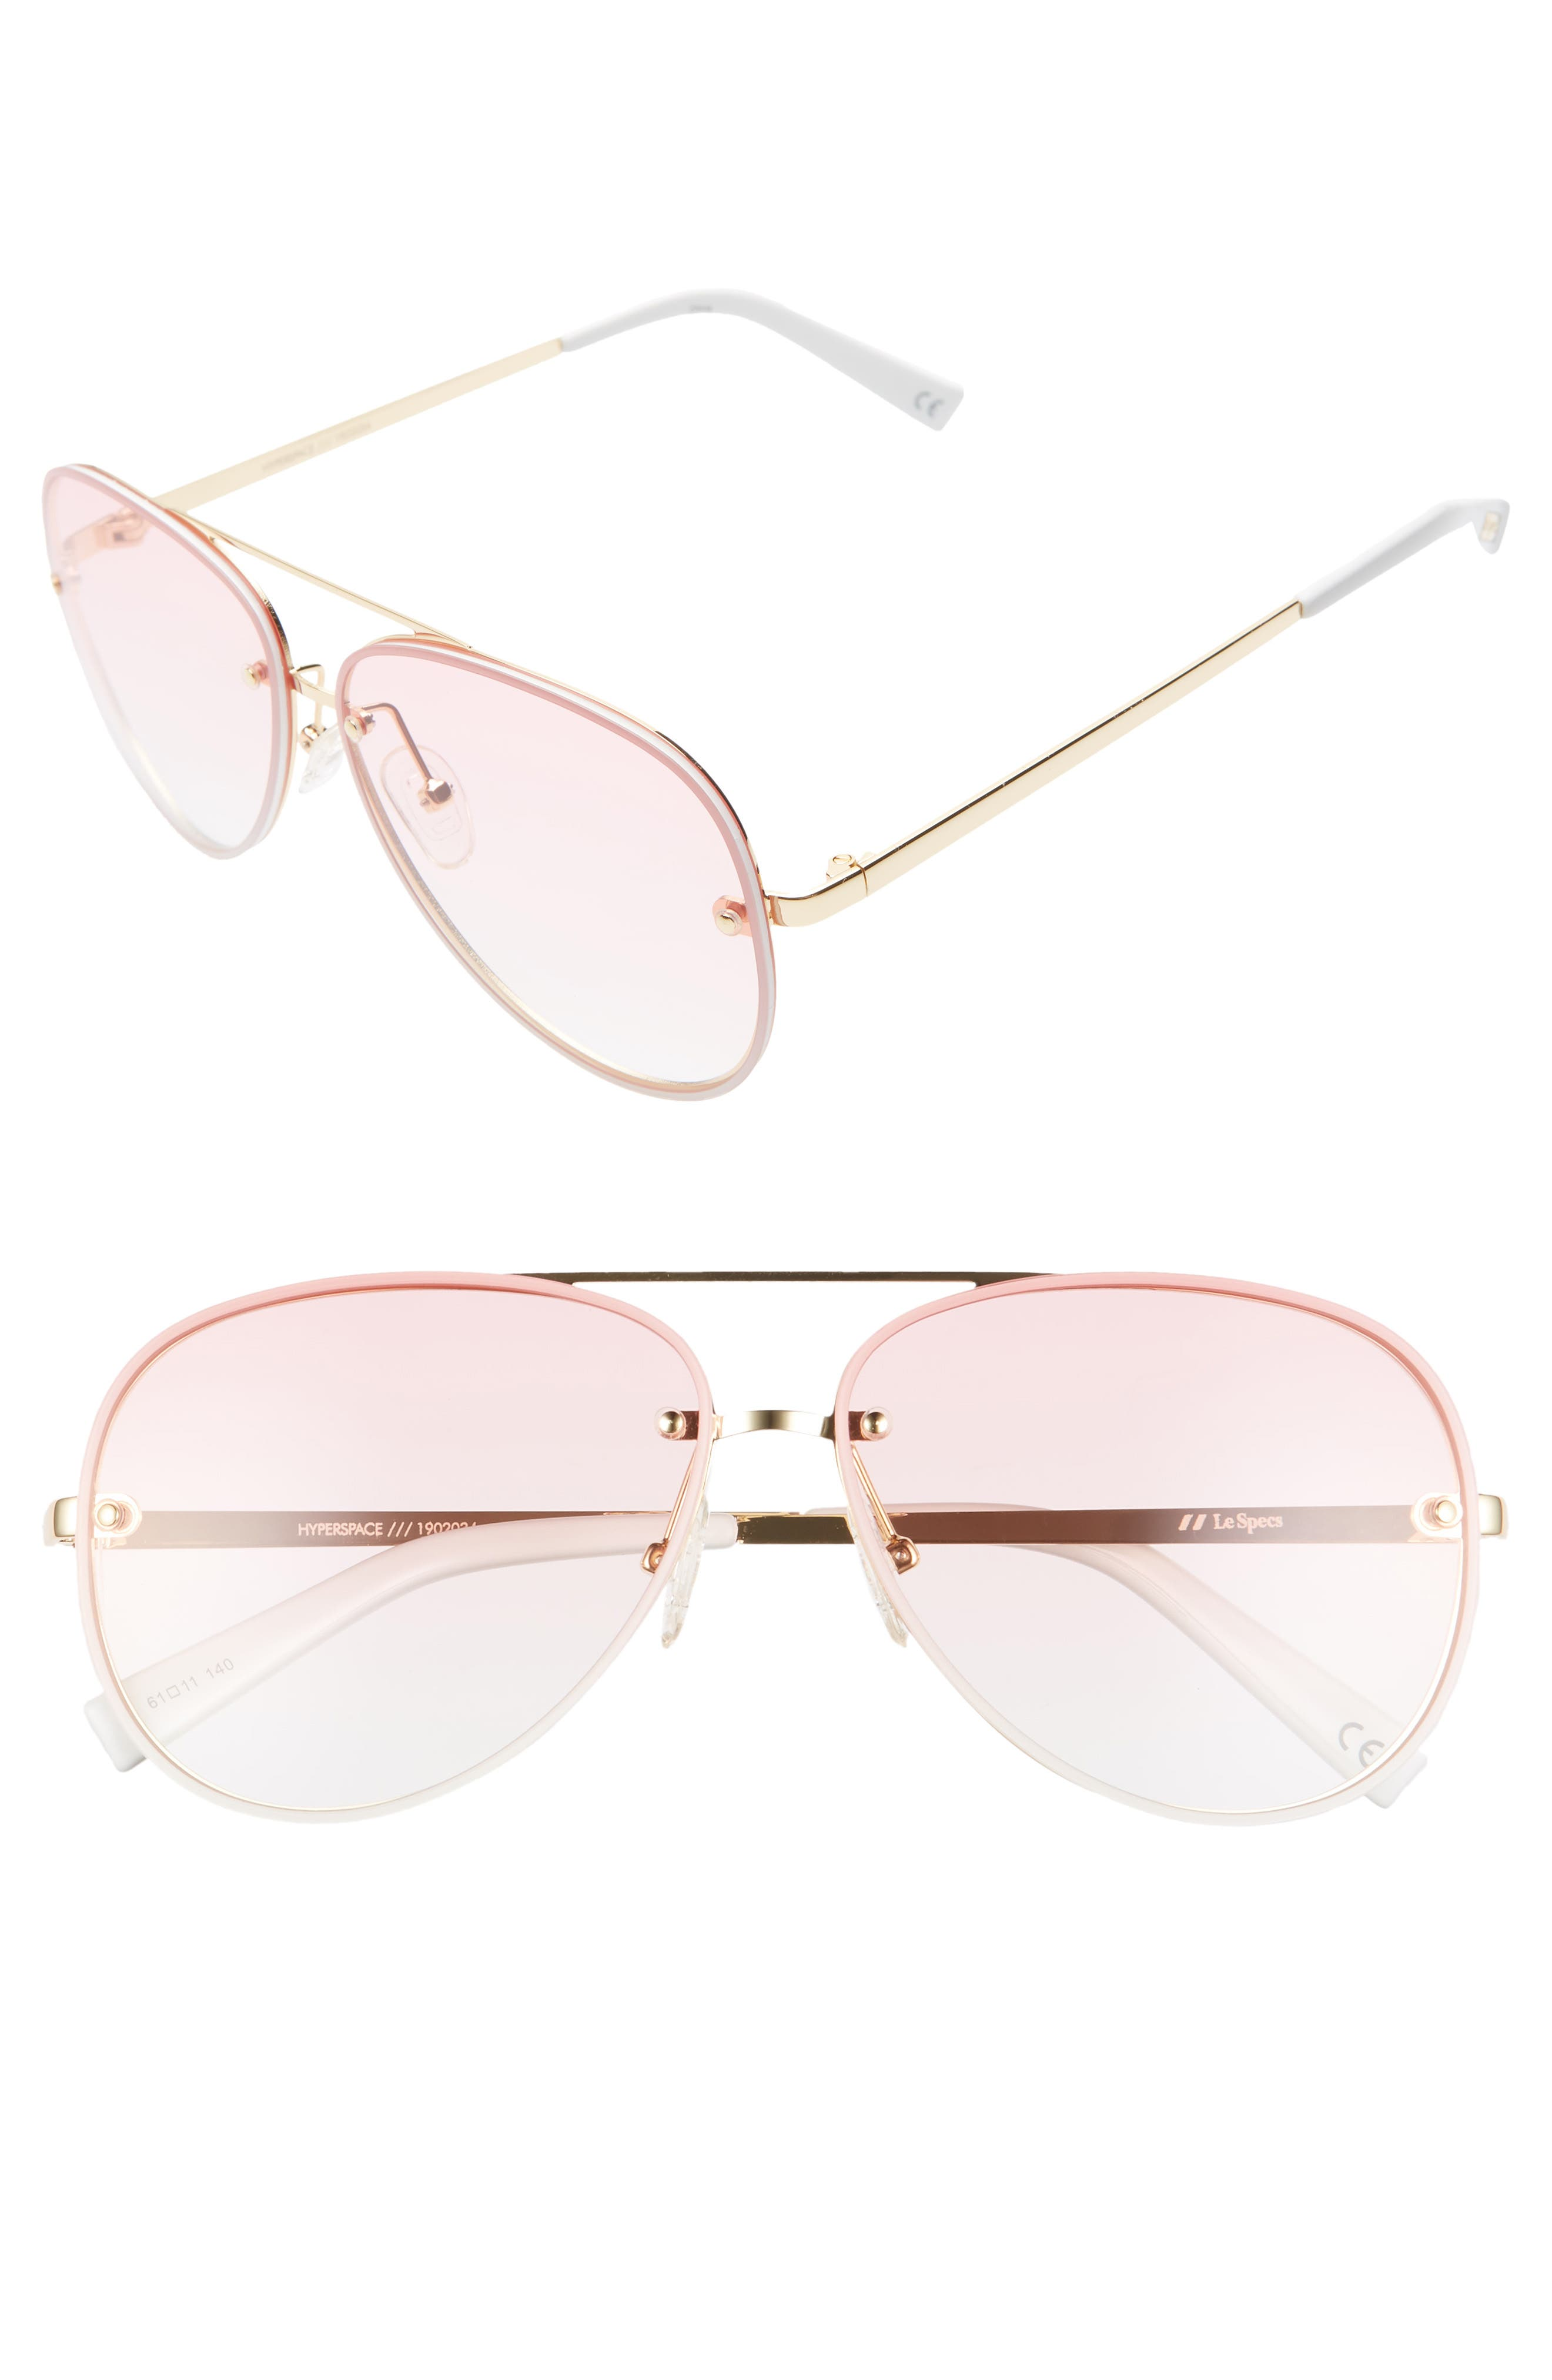 Le Specs Hyperspace 61Mm Aviator Sunglasses - Pink/ Gold/ Pink